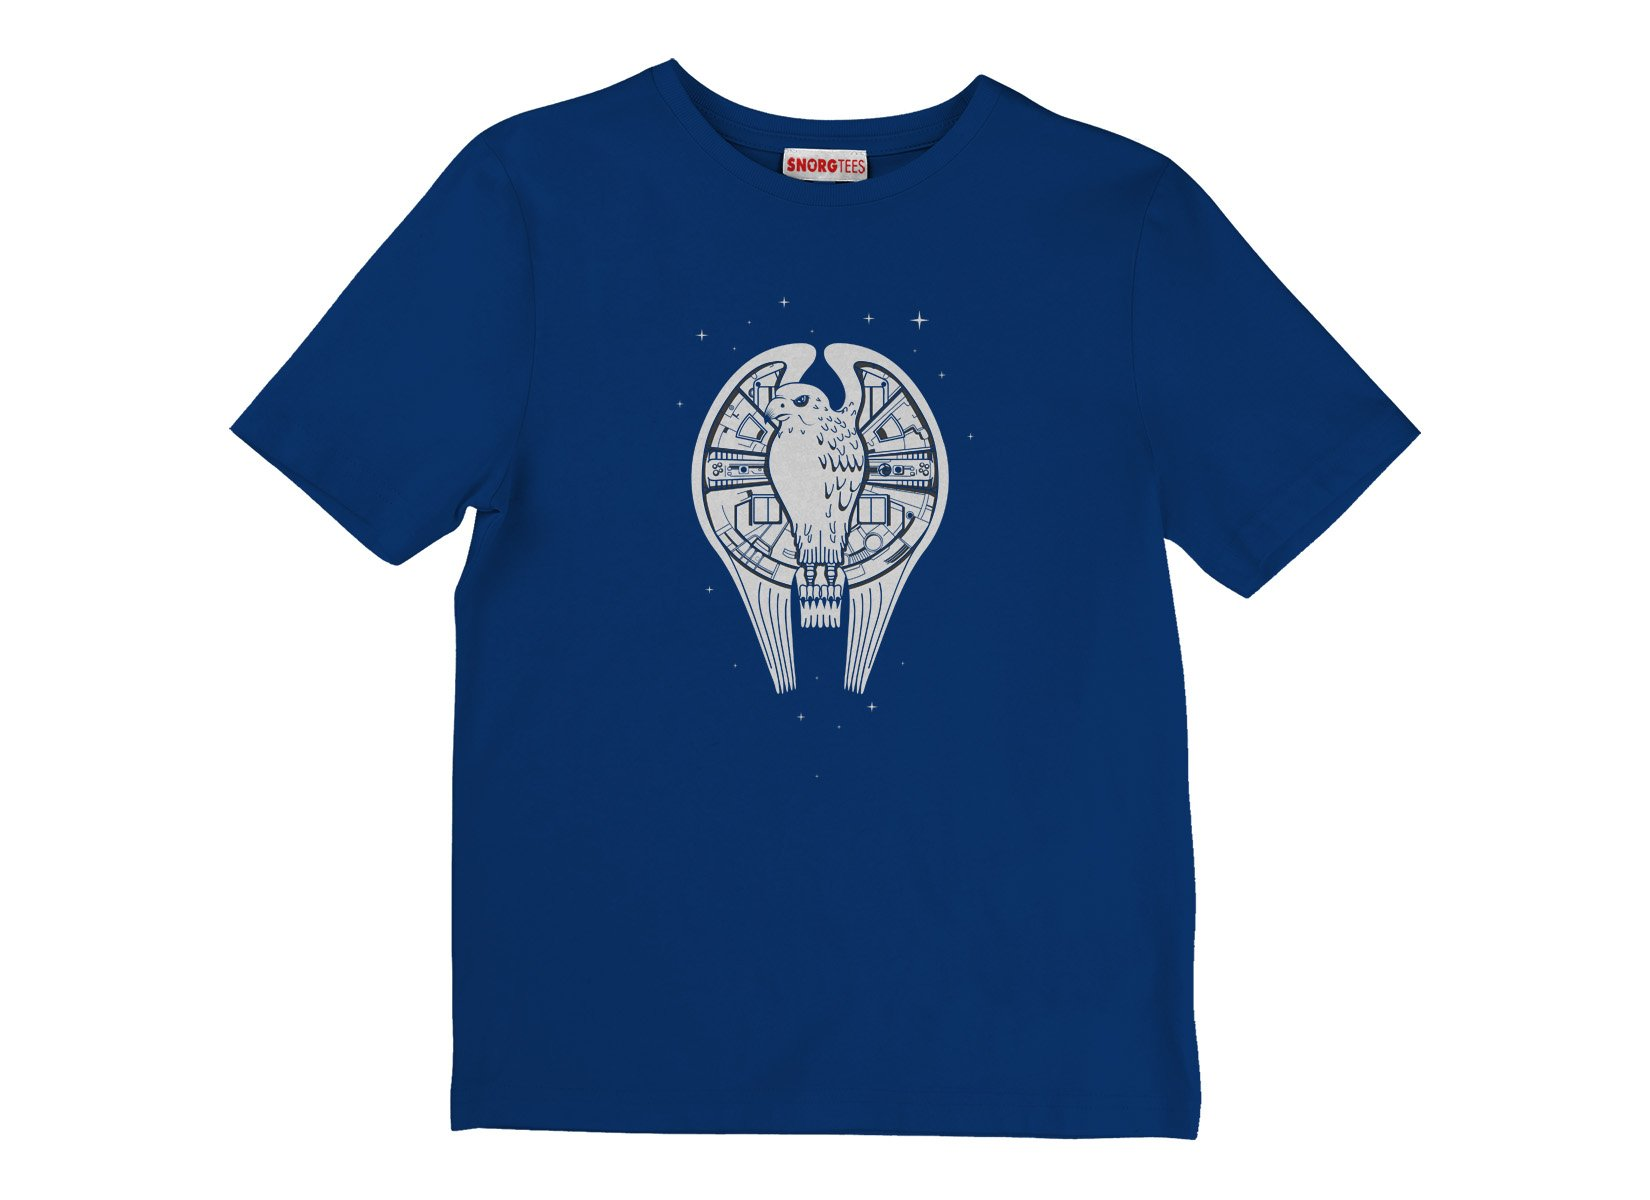 Fastest Falcon In The Universe on Kids T-Shirt